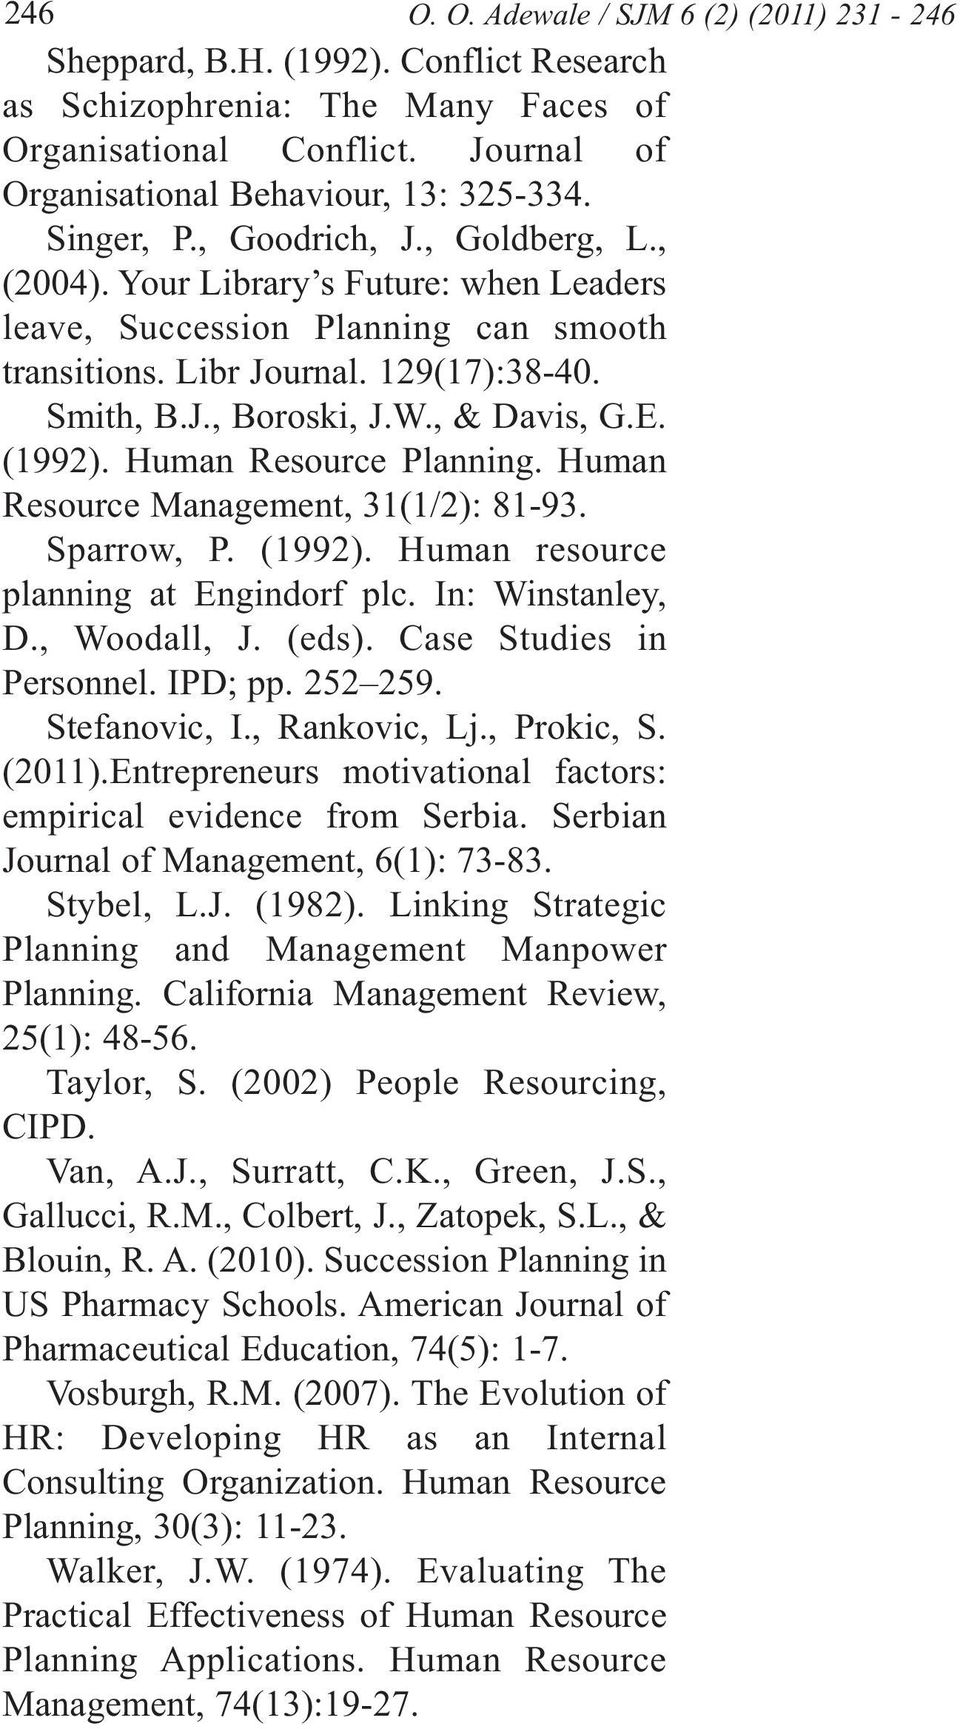 , & Davis, G.E. (1992). Human Resource Planning. Human Resource Management, 31(1/2): 81-93. Sparrow, P. (1992). Human resource planning at Engindorf plc. In: Winstanley, D., Woodall, J. (eds).